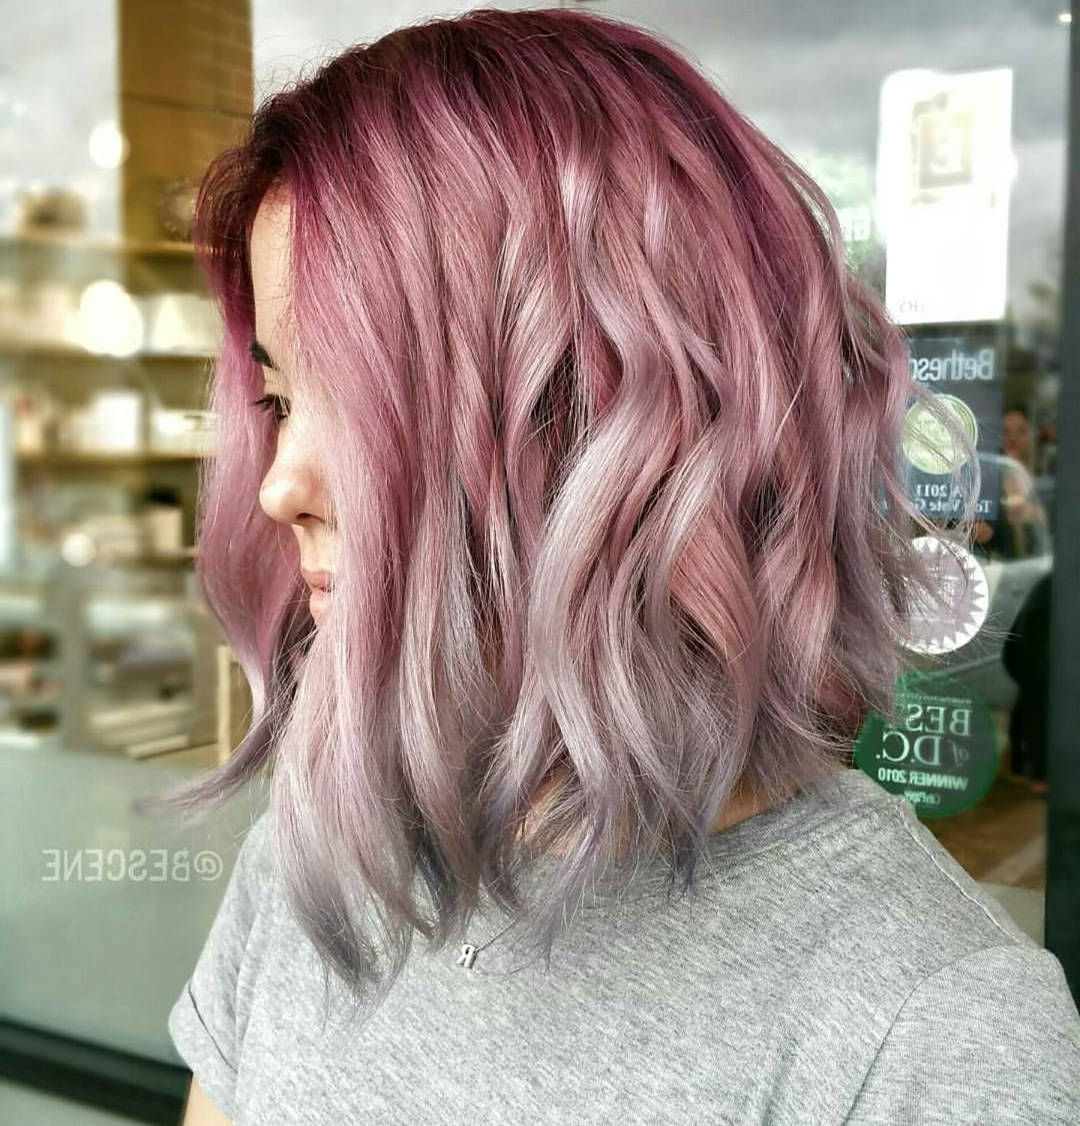 [%most Recent Angled Wavy Lob Blonde Hairstyles For 30 Edgy Medium Length Haircuts For Thick Hair [august, 2018]|30 Edgy Medium Length Haircuts For Thick Hair [august, 2018] Intended For Most Recent Angled Wavy Lob Blonde Hairstyles%] (View 14 of 20)